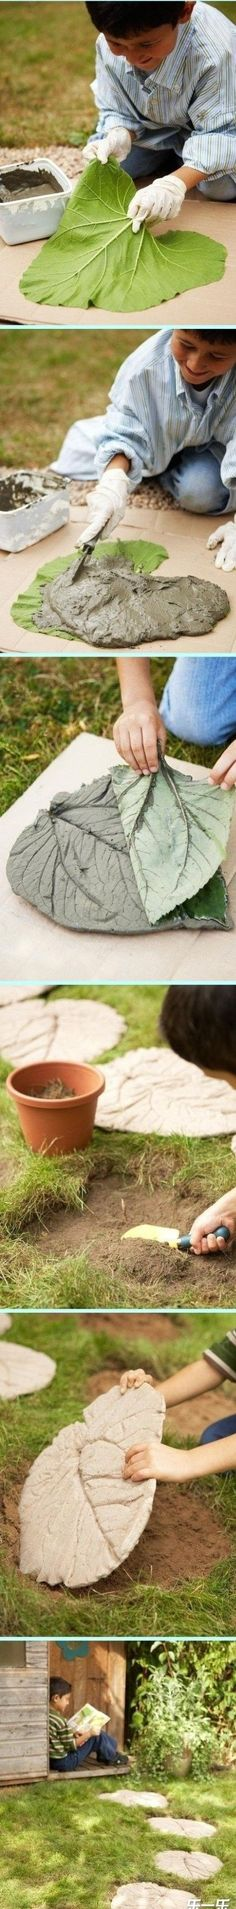 DYI homemade garden decorations projects ideas rhubarb leaf concrete stepping stones